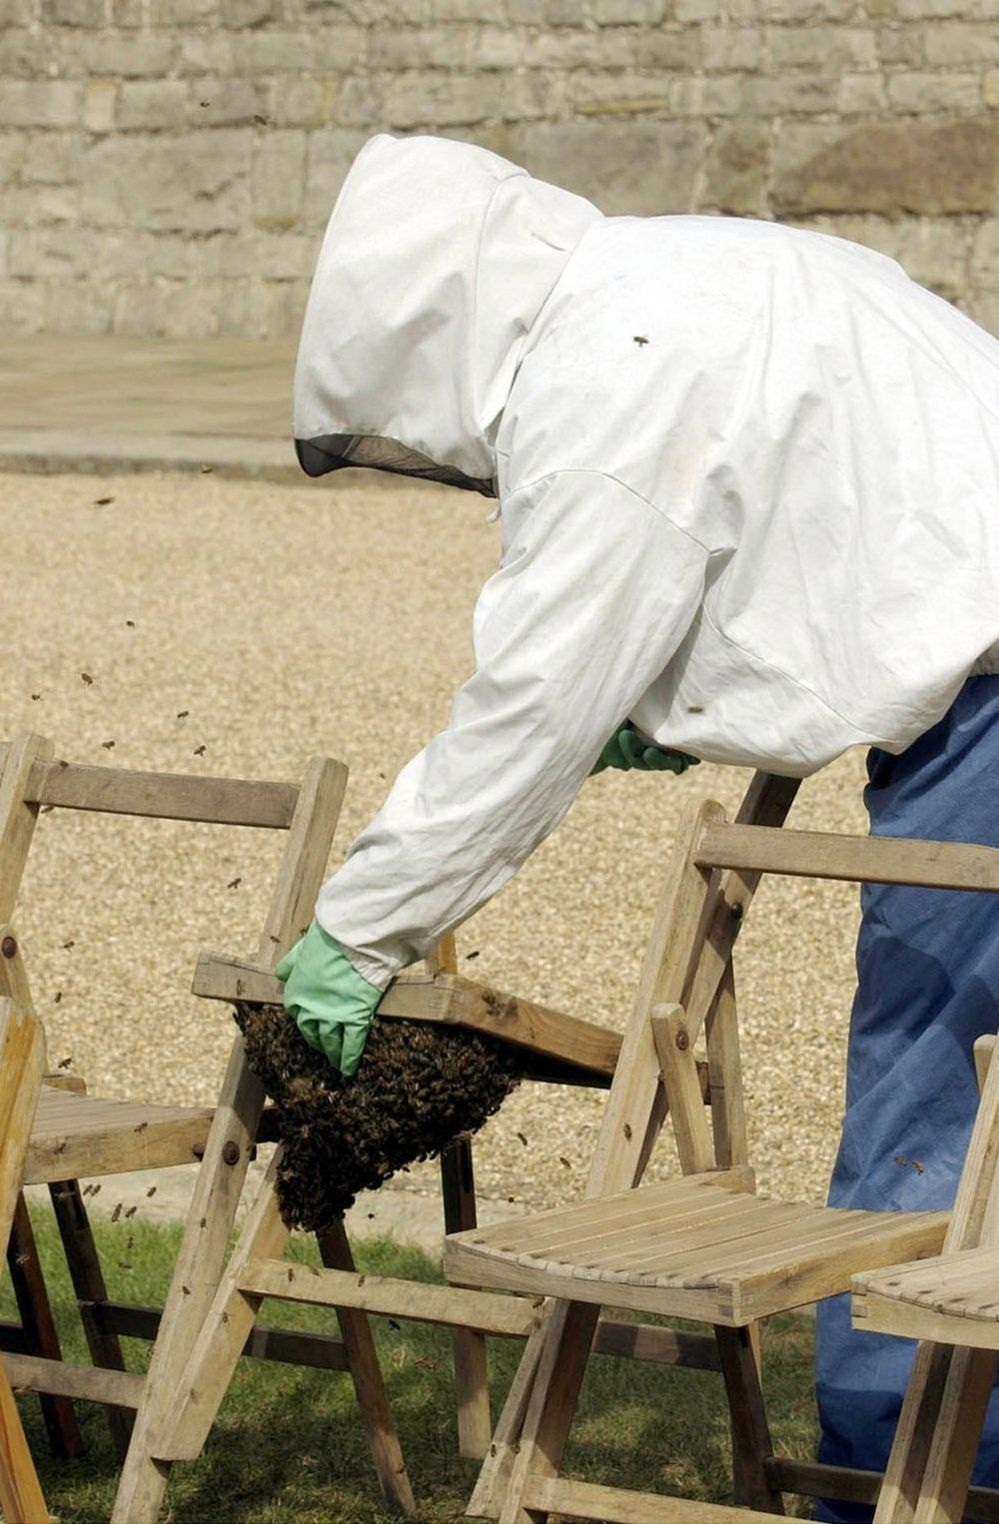 A beekeeper removes the bees